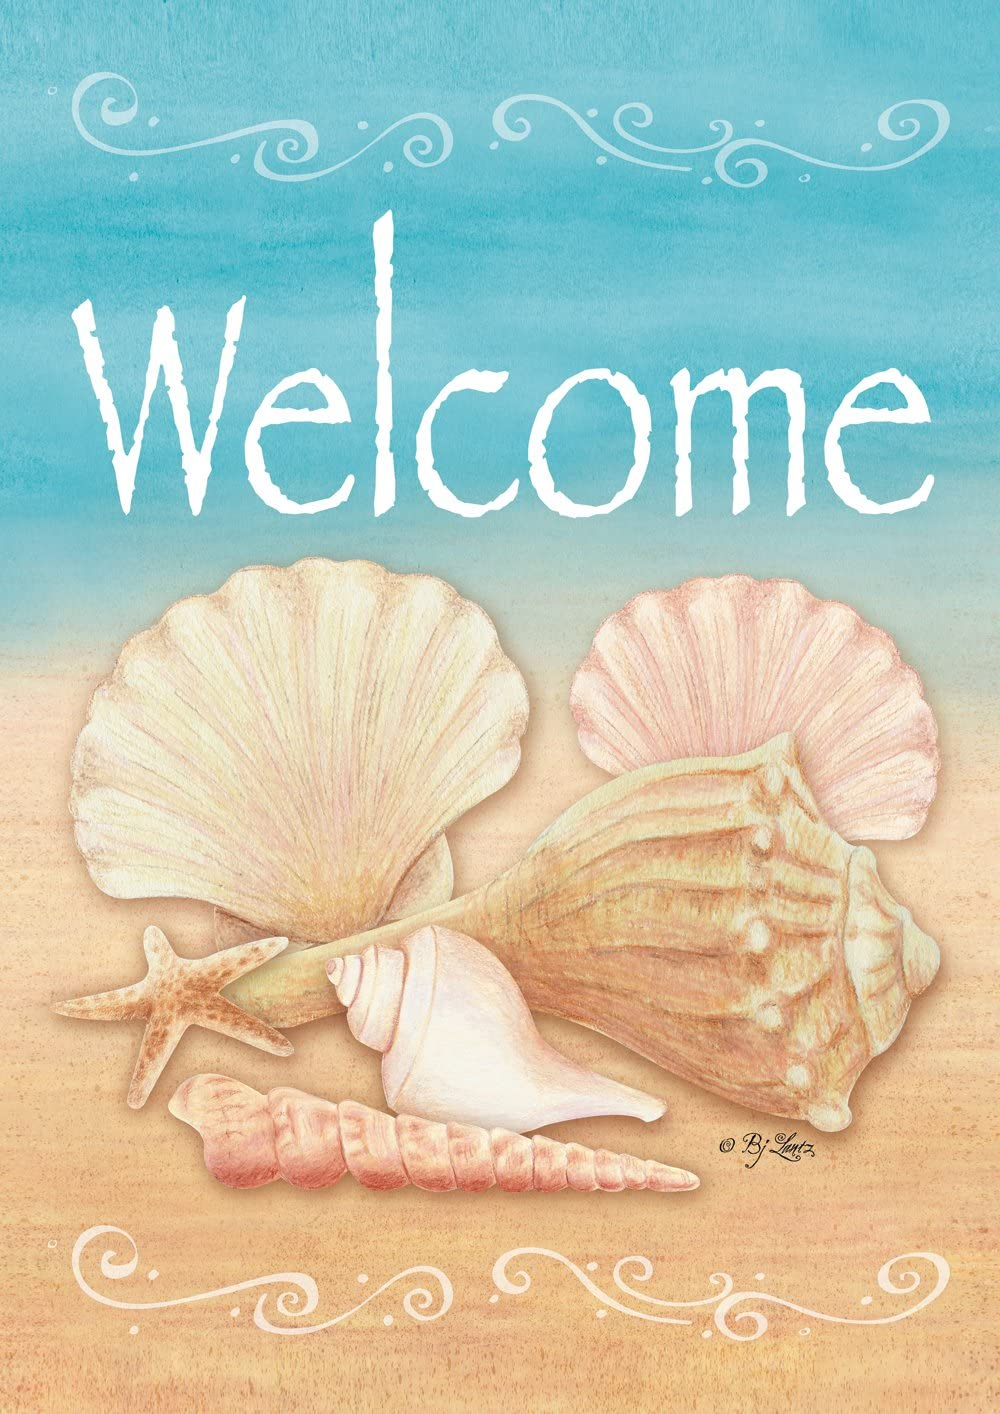 Toland Home Garden 117073 Welcome Shells 12.5 x 18 Inch Decorative, (12.5